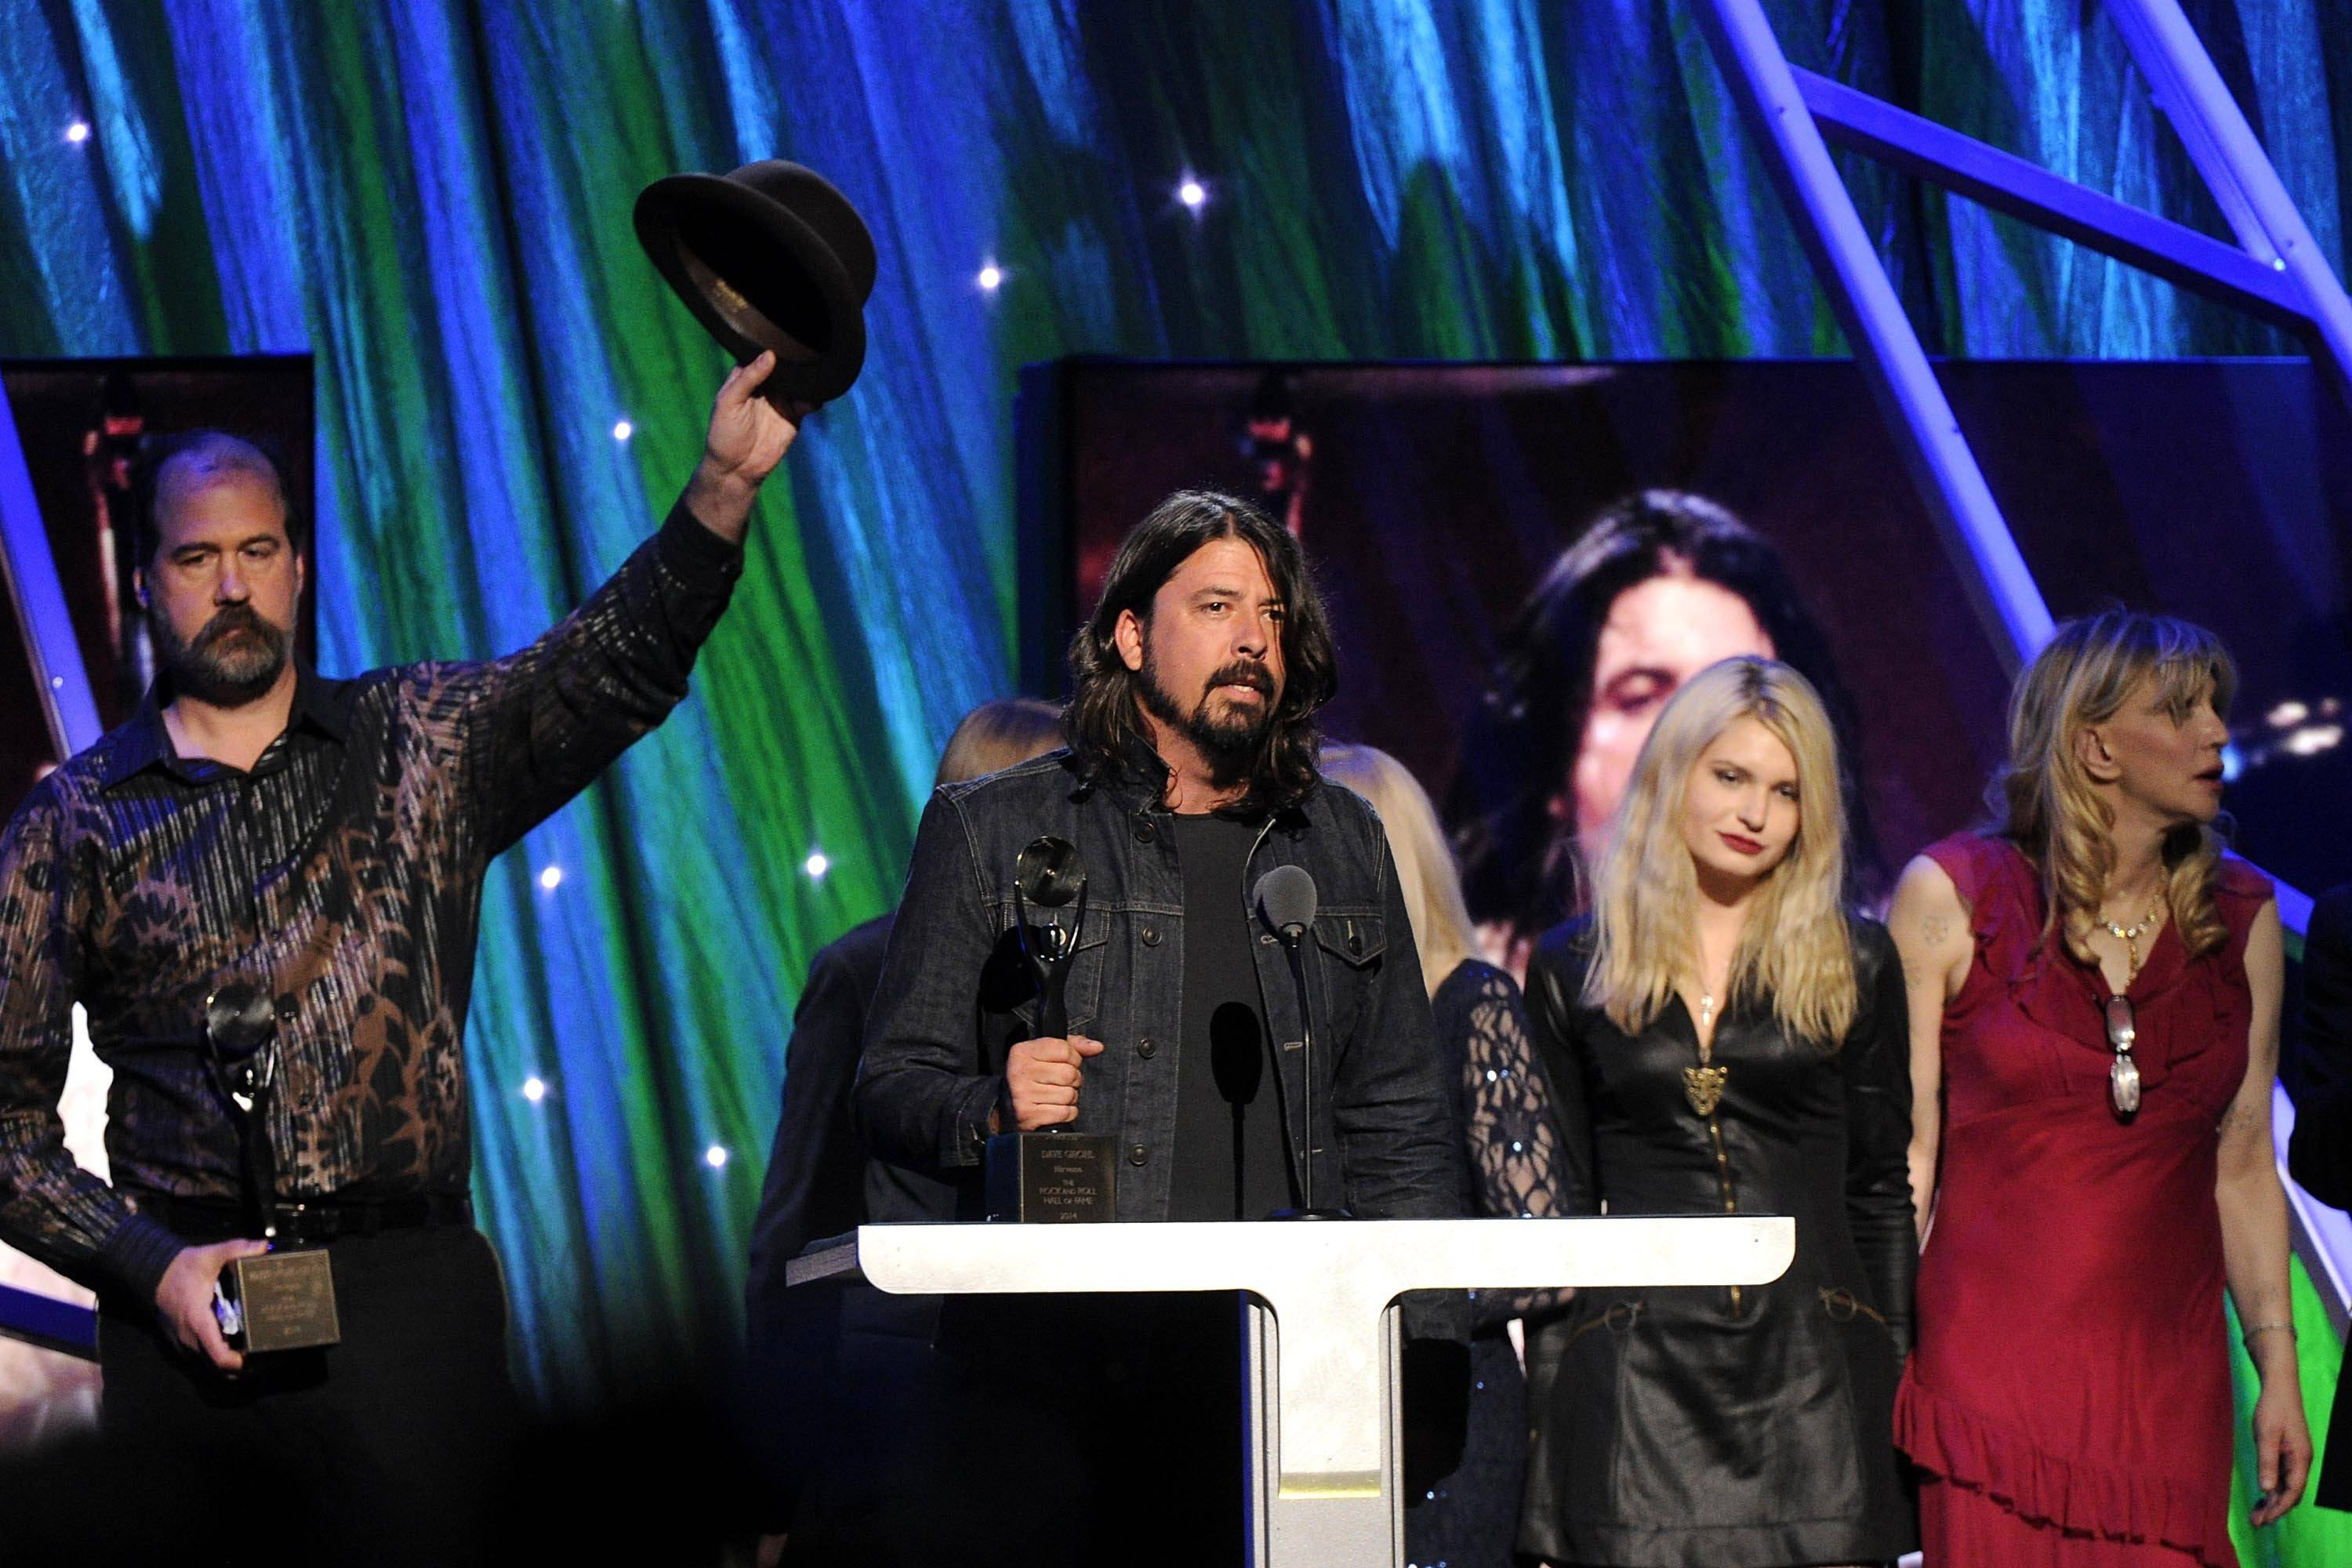 Hall of Fame Inductee of Nirvana, Dave Grohl speaks at the 2014 Rock and Roll Hall of Fame Induction Ceremony on Thursday in New York.